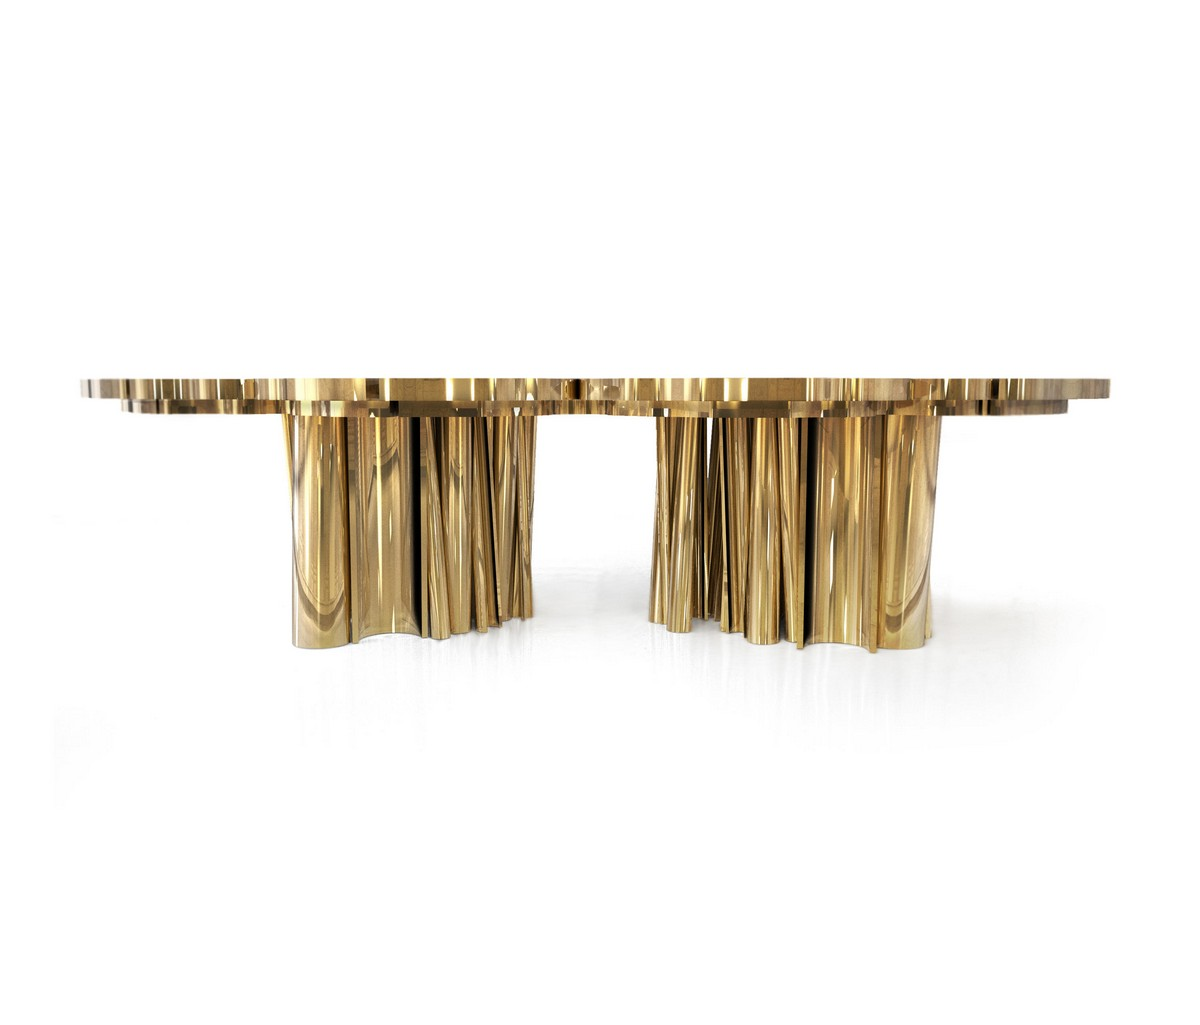 Top Bespoke Dining Tables (Part II) bespoke dining tables Top Bespoke Dining Tables (Part II) fortuna2